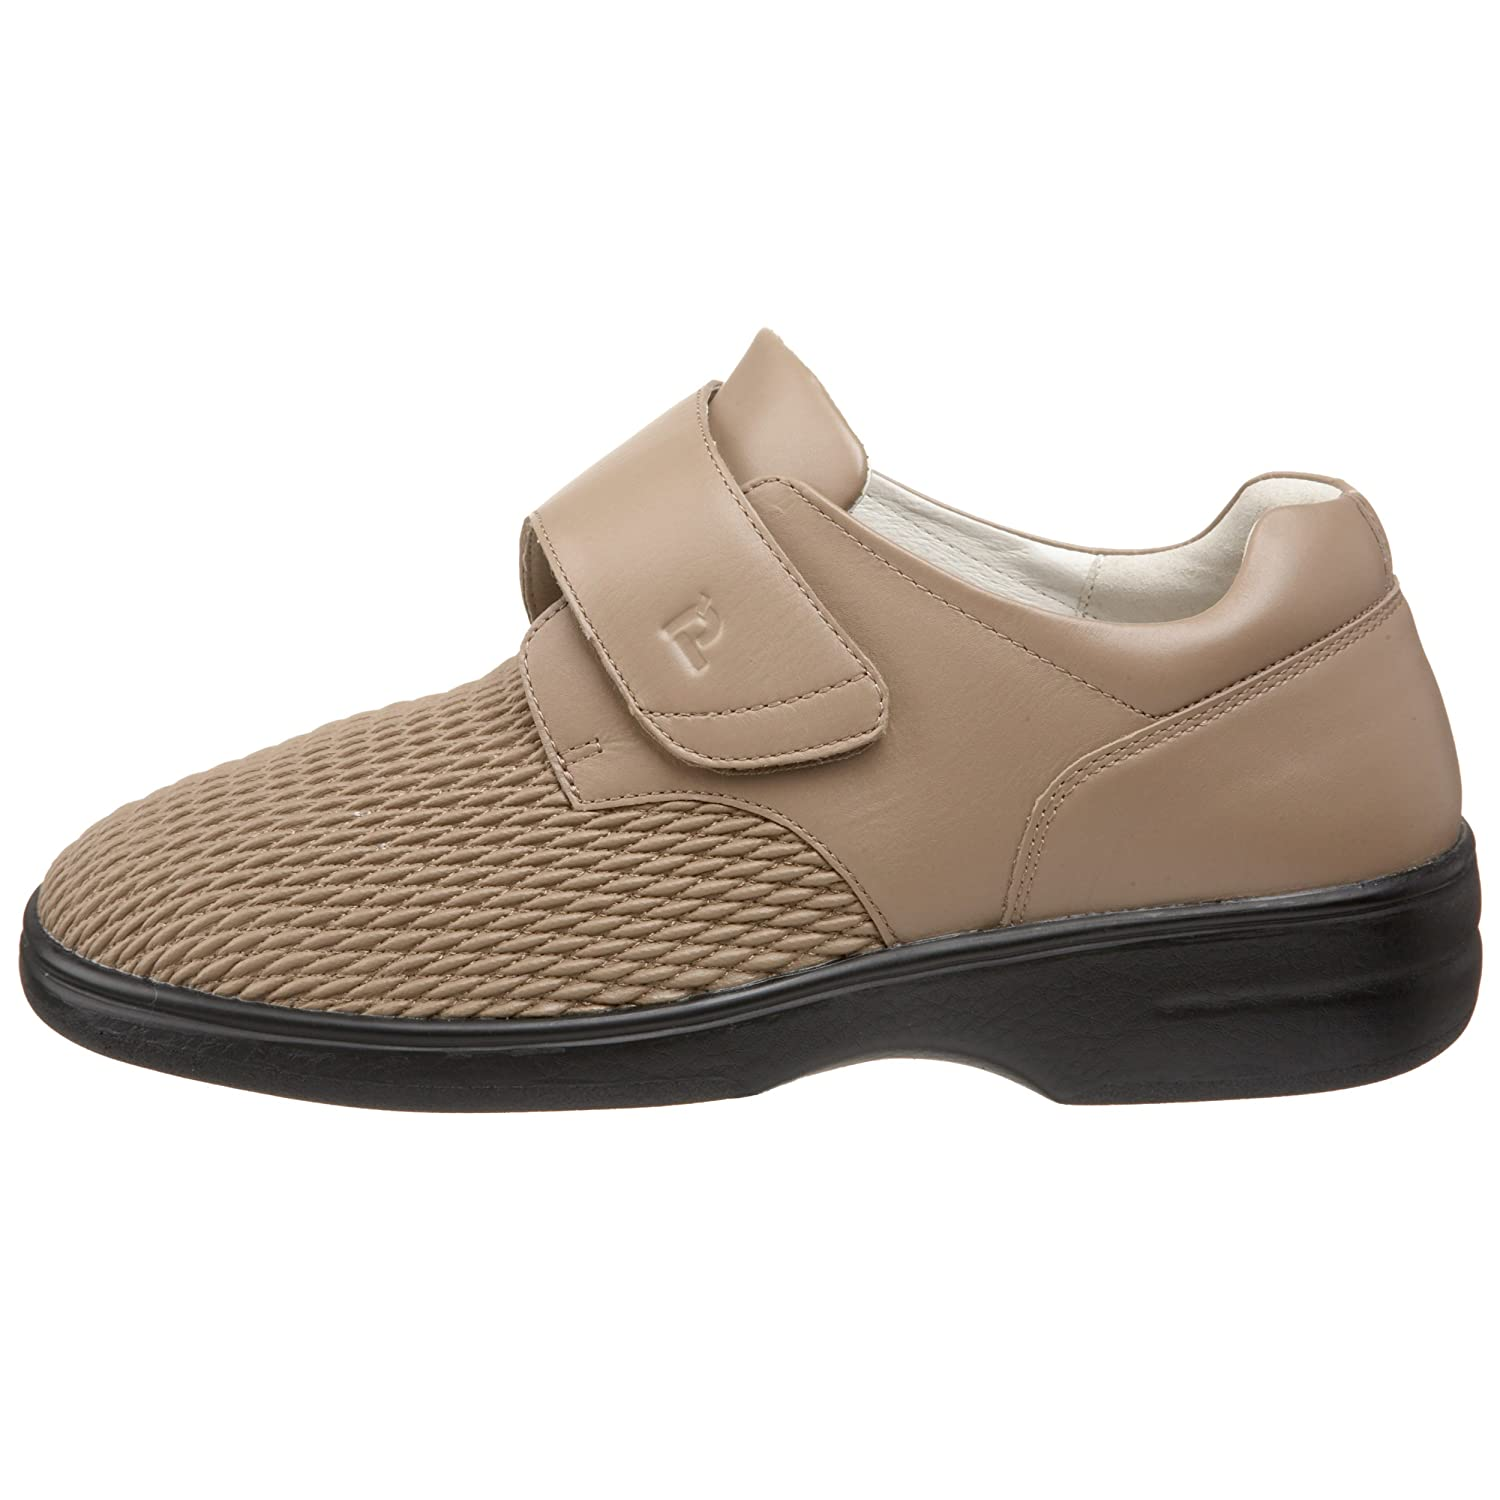 Propet Women's Olivia Oxford B002A9ICRC 6 W US|Taupe